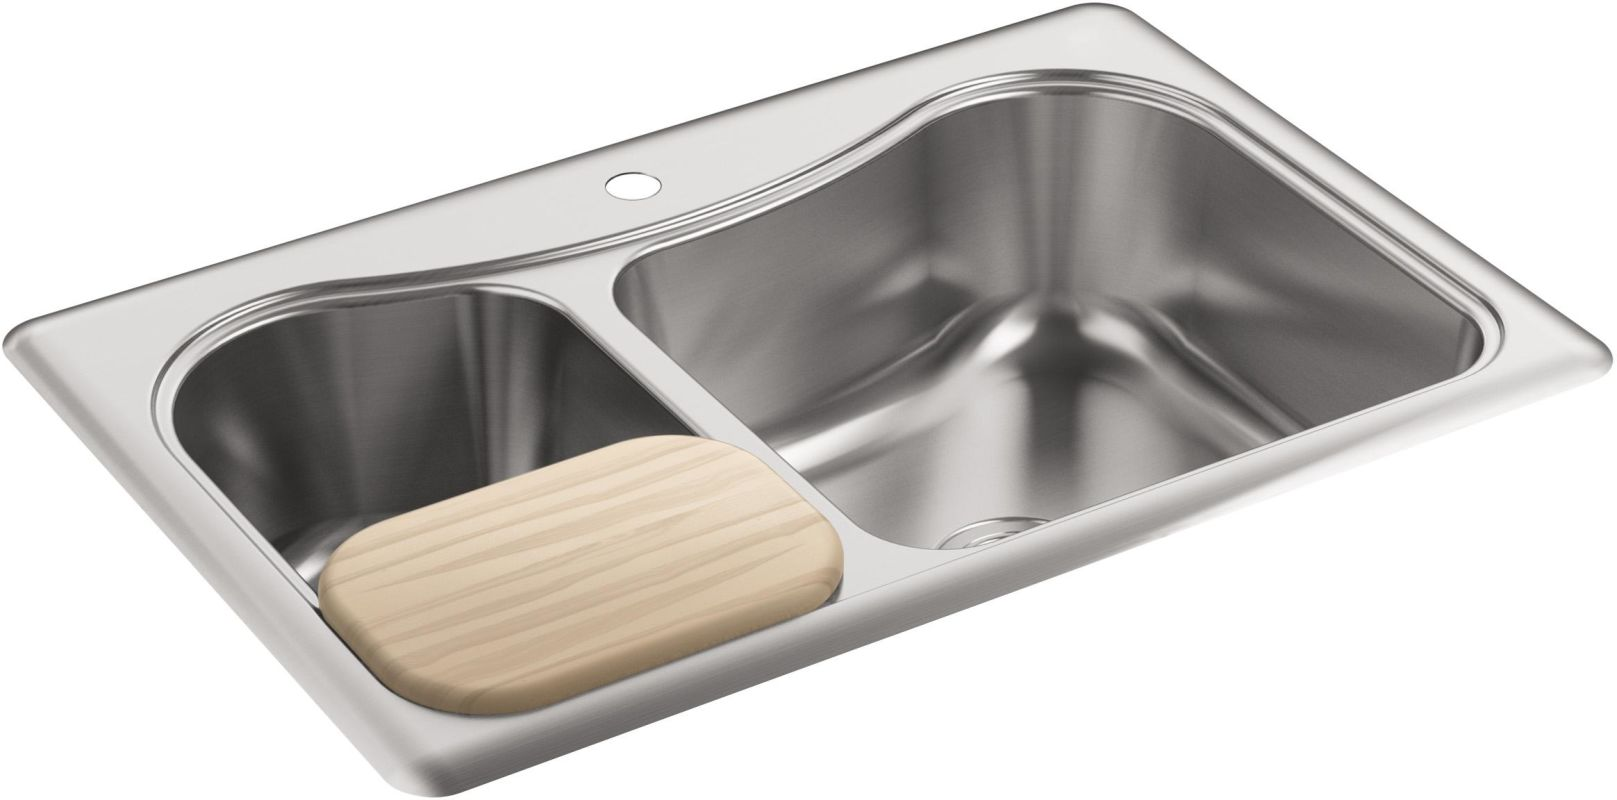 How To Fit A Kitchen Sink Into A Larger Hole